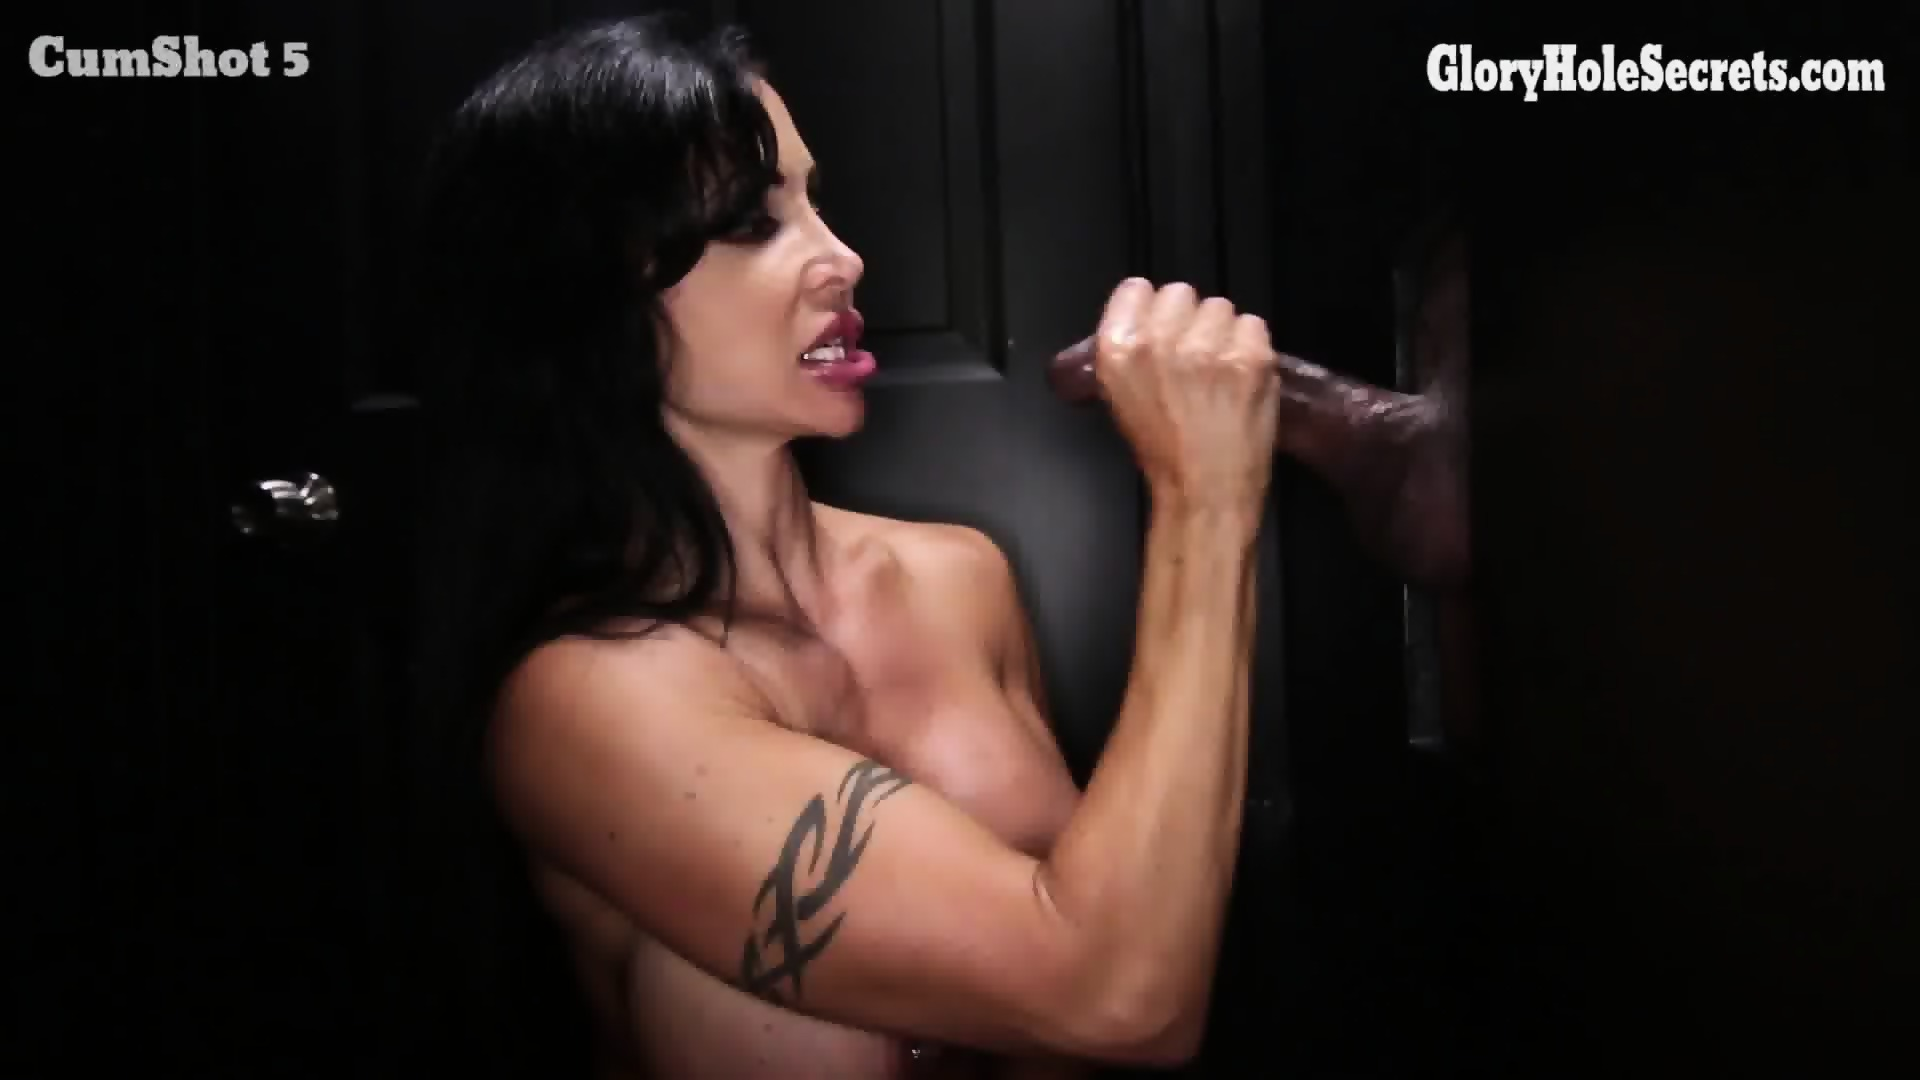 Hole pornstar clips glory